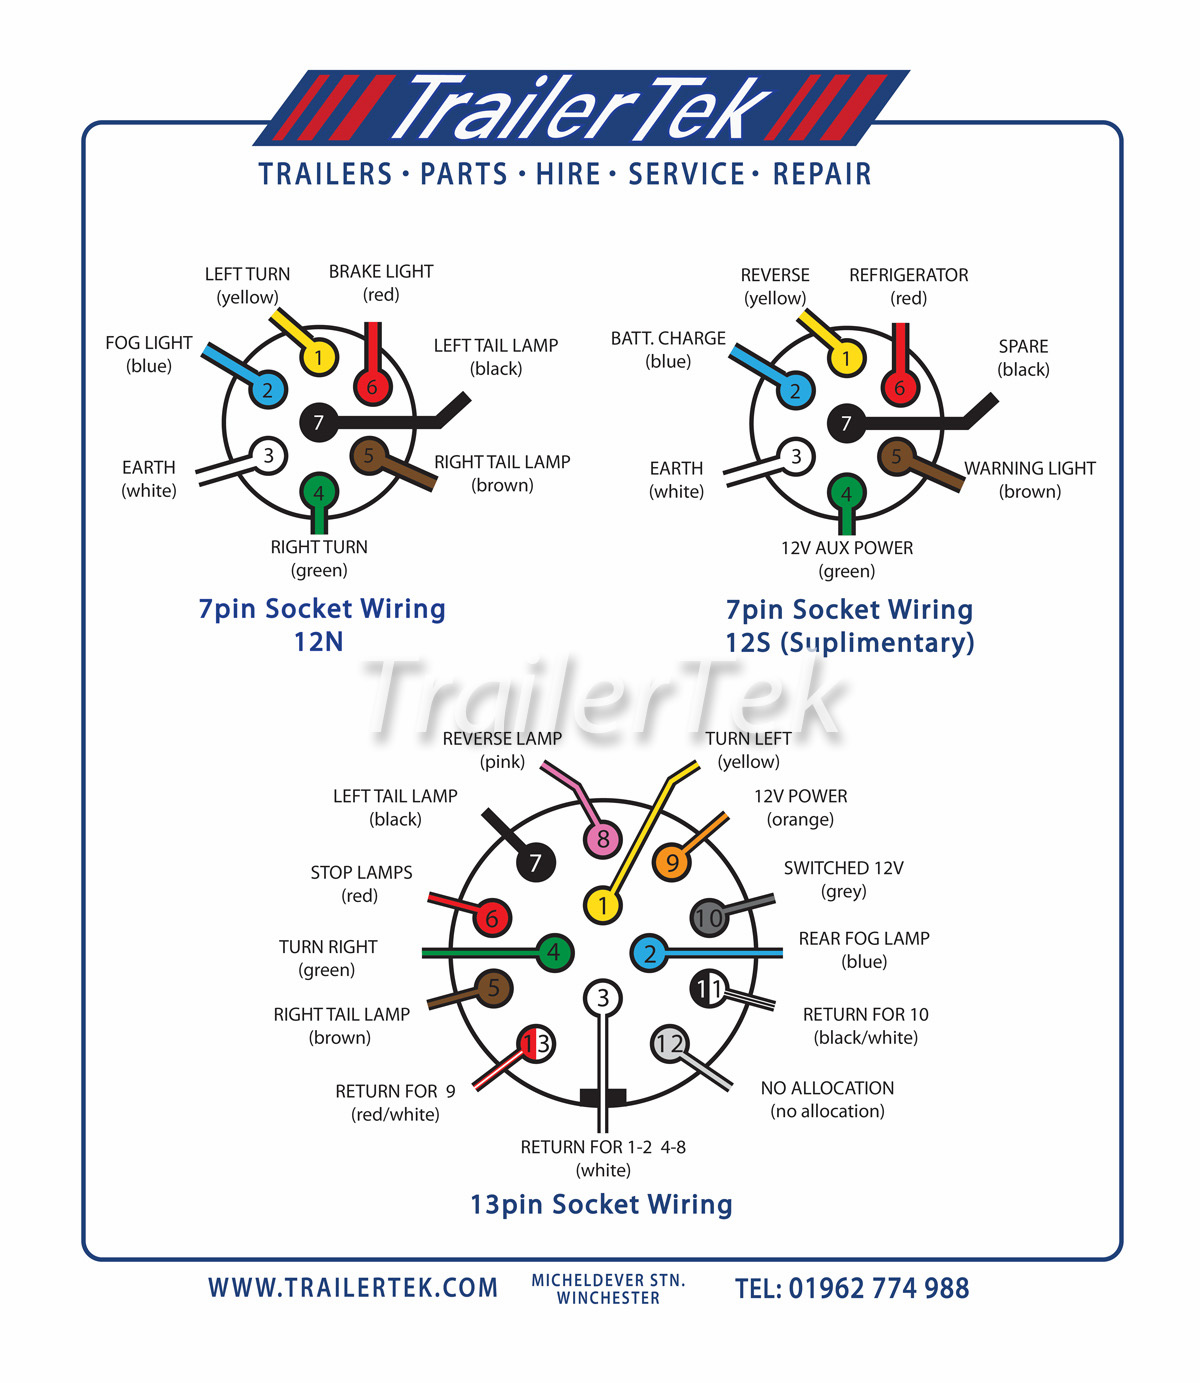 Coromal caravan wiring diagram wiring diagram database aeonhart com jayco caravan wiring diagram with amazing inspirational switched outlet wiring diagram coromal caravan wiring diagram cheapraybanclubmaster Gallery